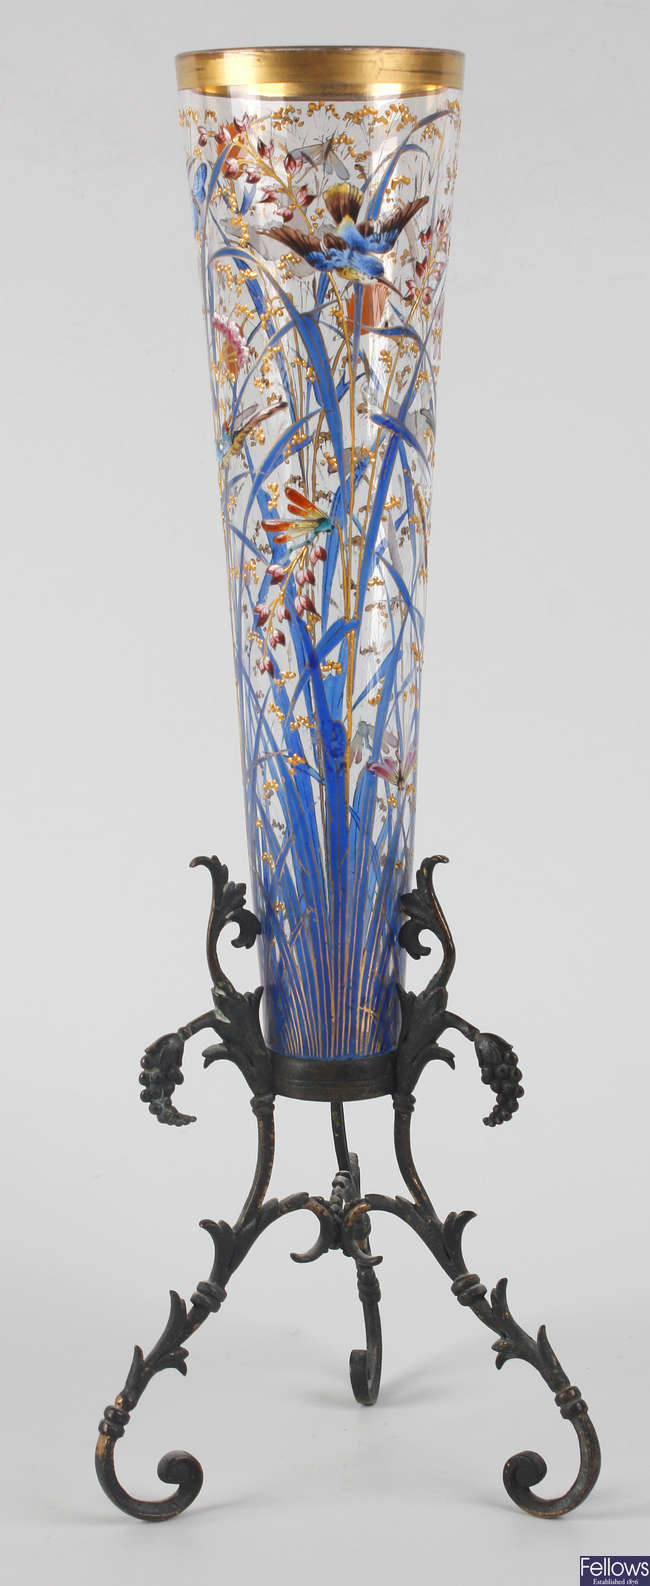 A Moser glass table centre vase